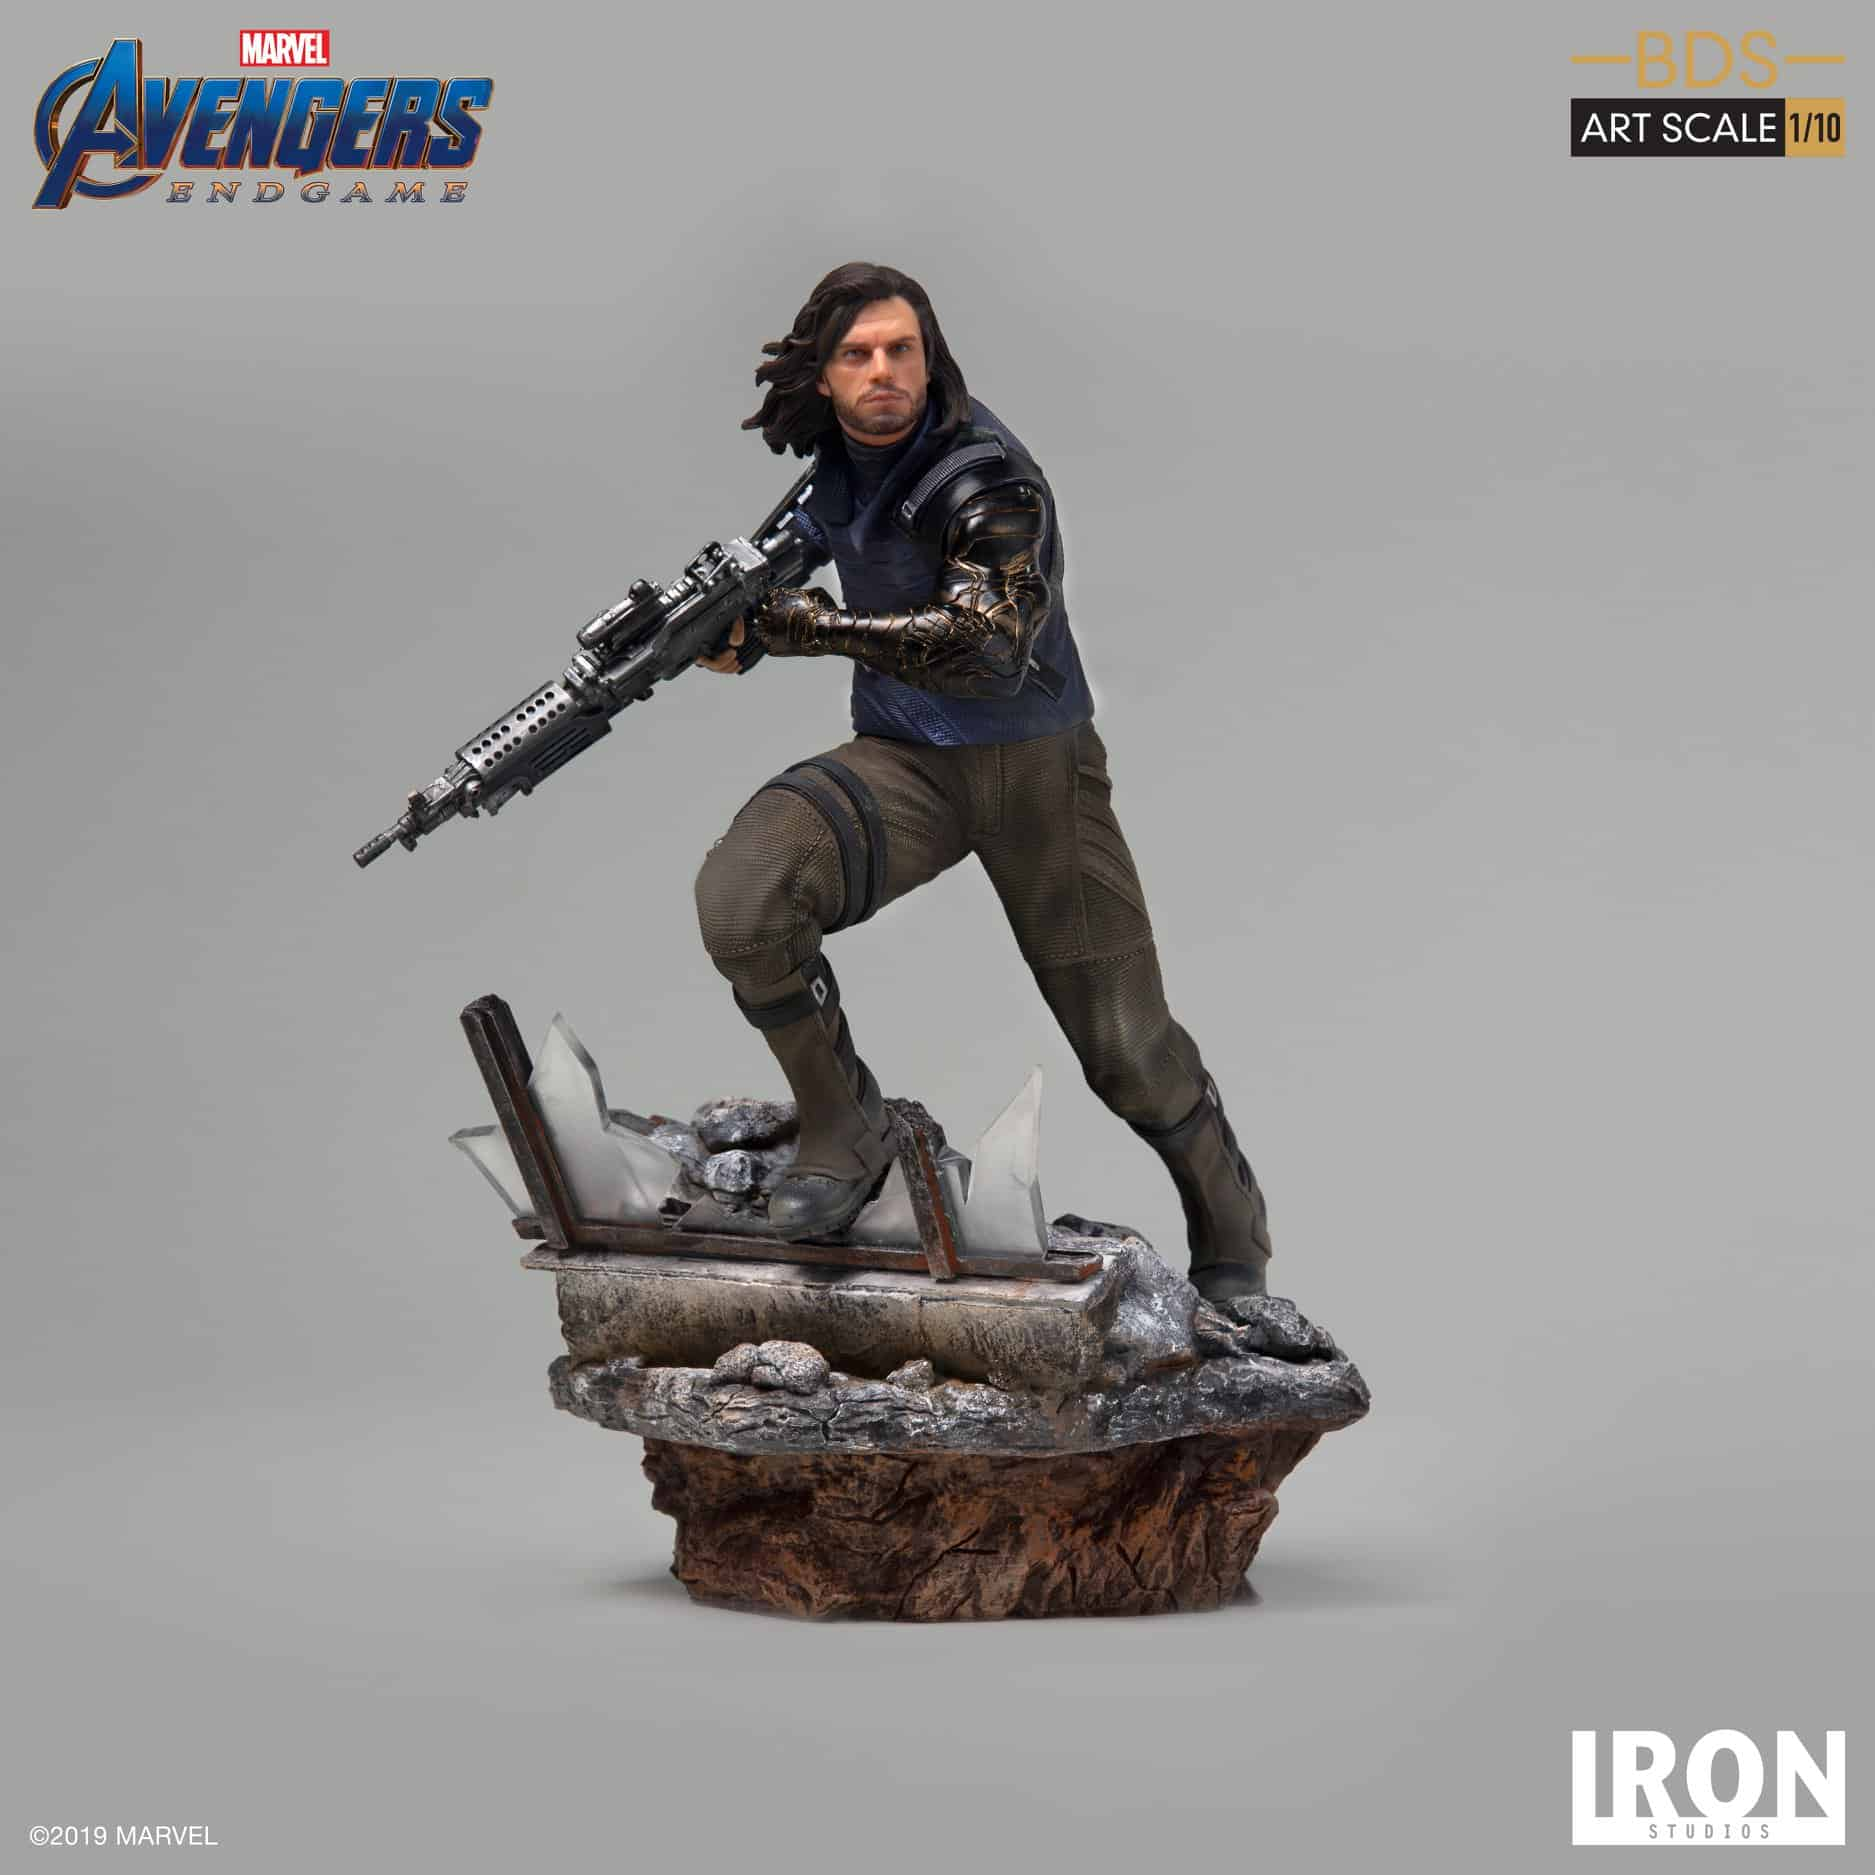 Iron Studio Winter Soldier BDS Art Scale 1/10 – Avengers: Endgame